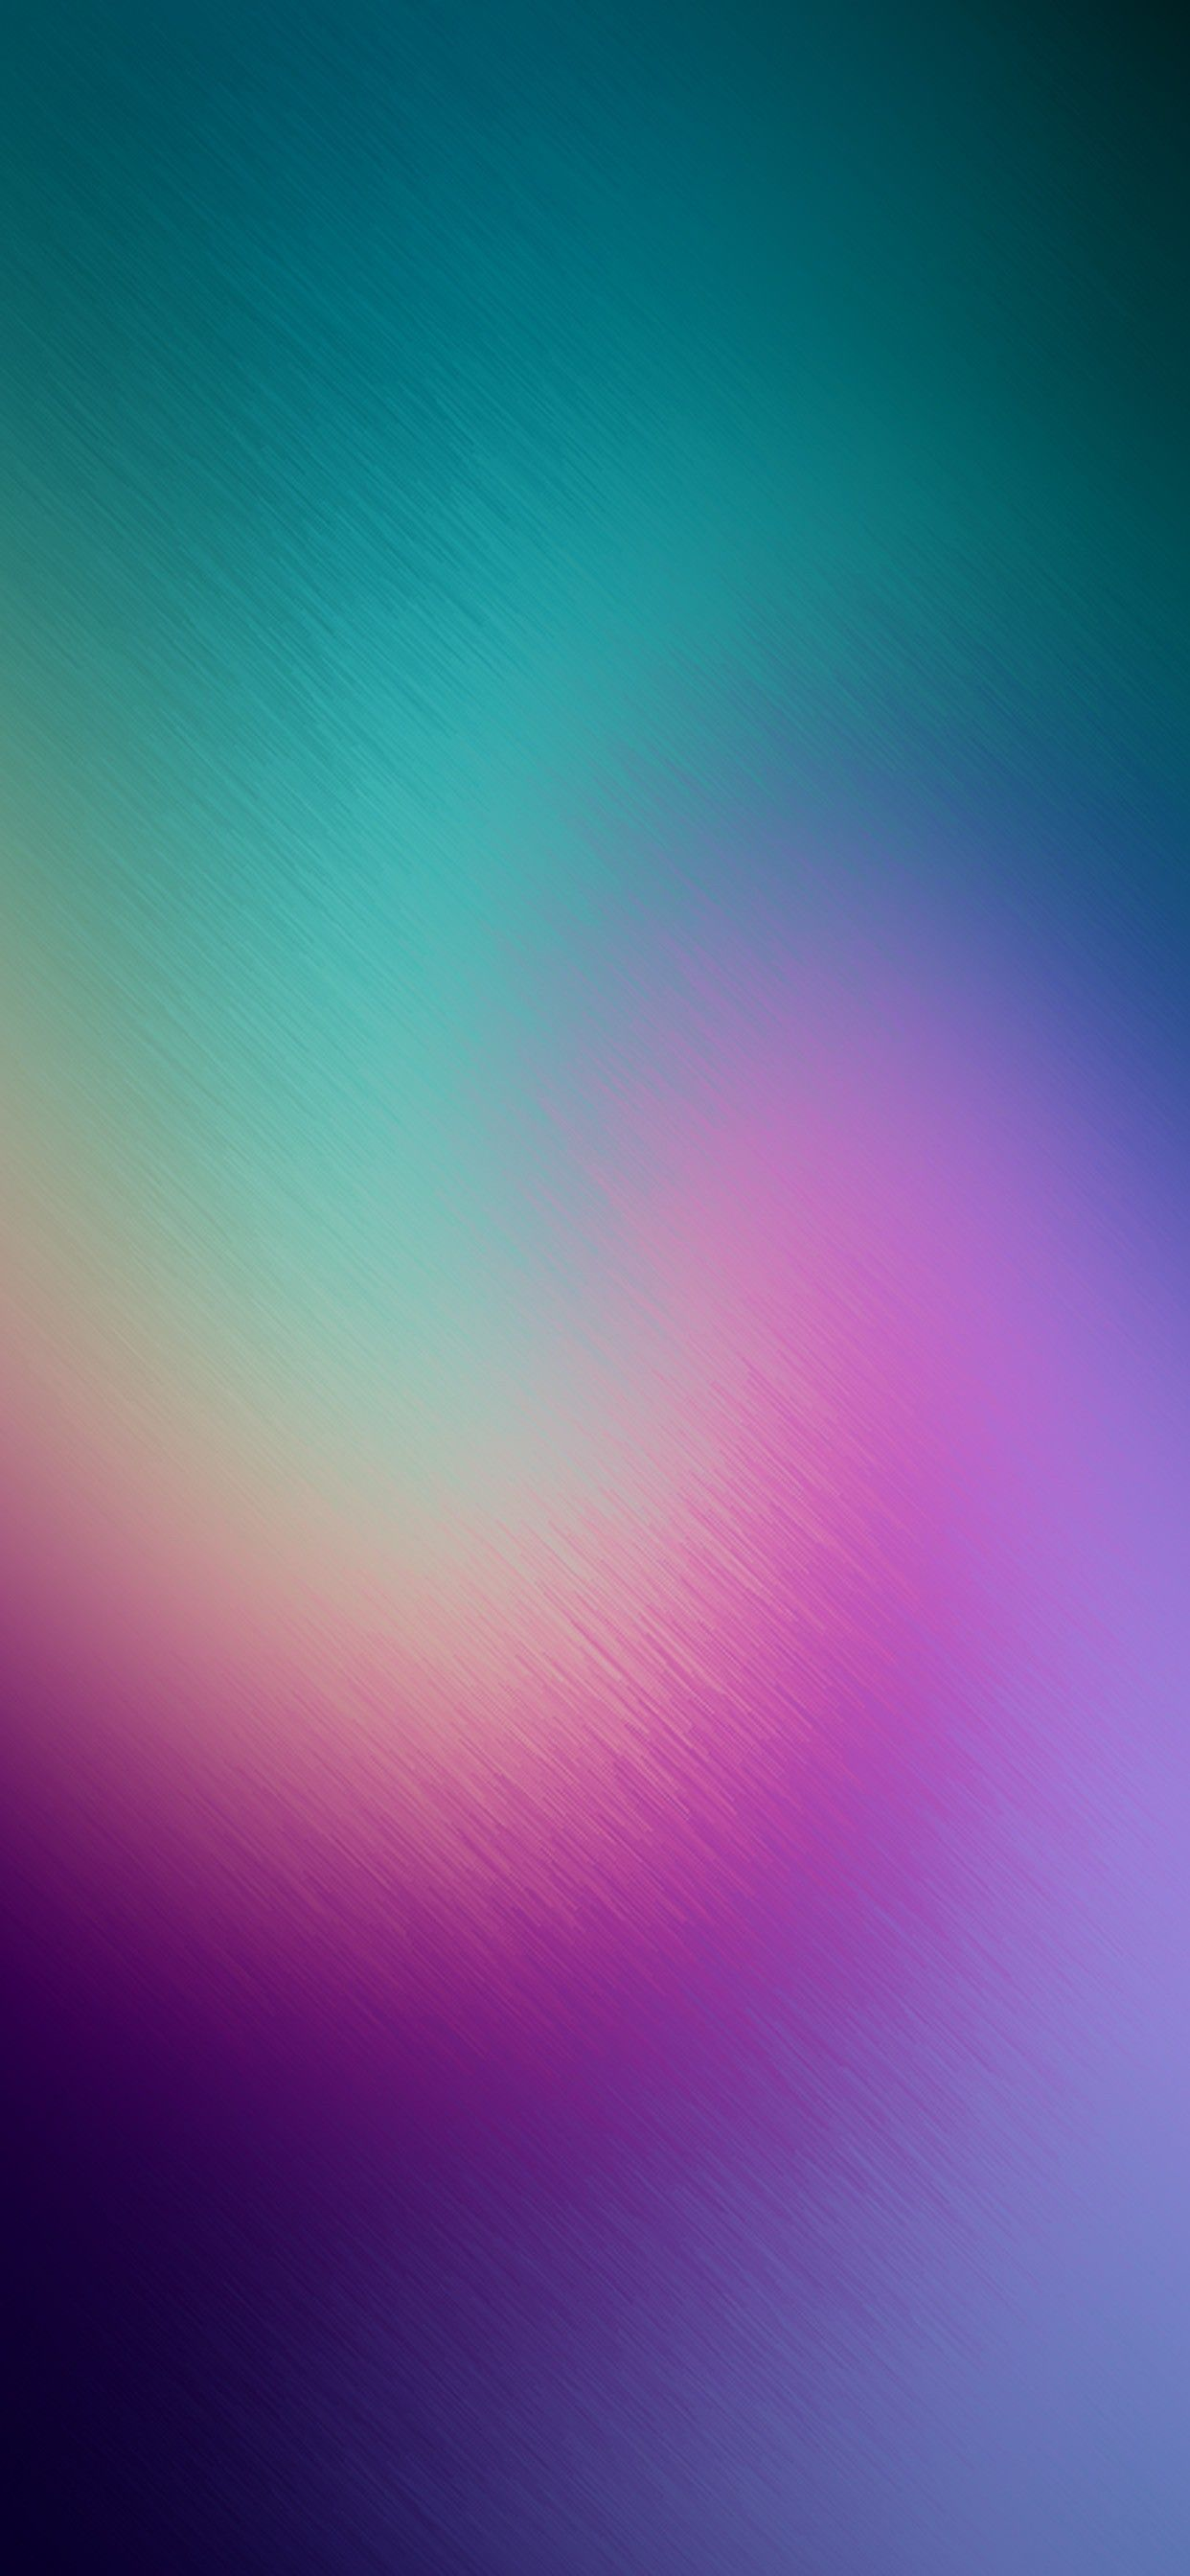 Lg G8x Thinq Abstract Mobile Hd Wallpapers 1242x2688 Hd Wallpaper Abstract Abstract Wallpaper